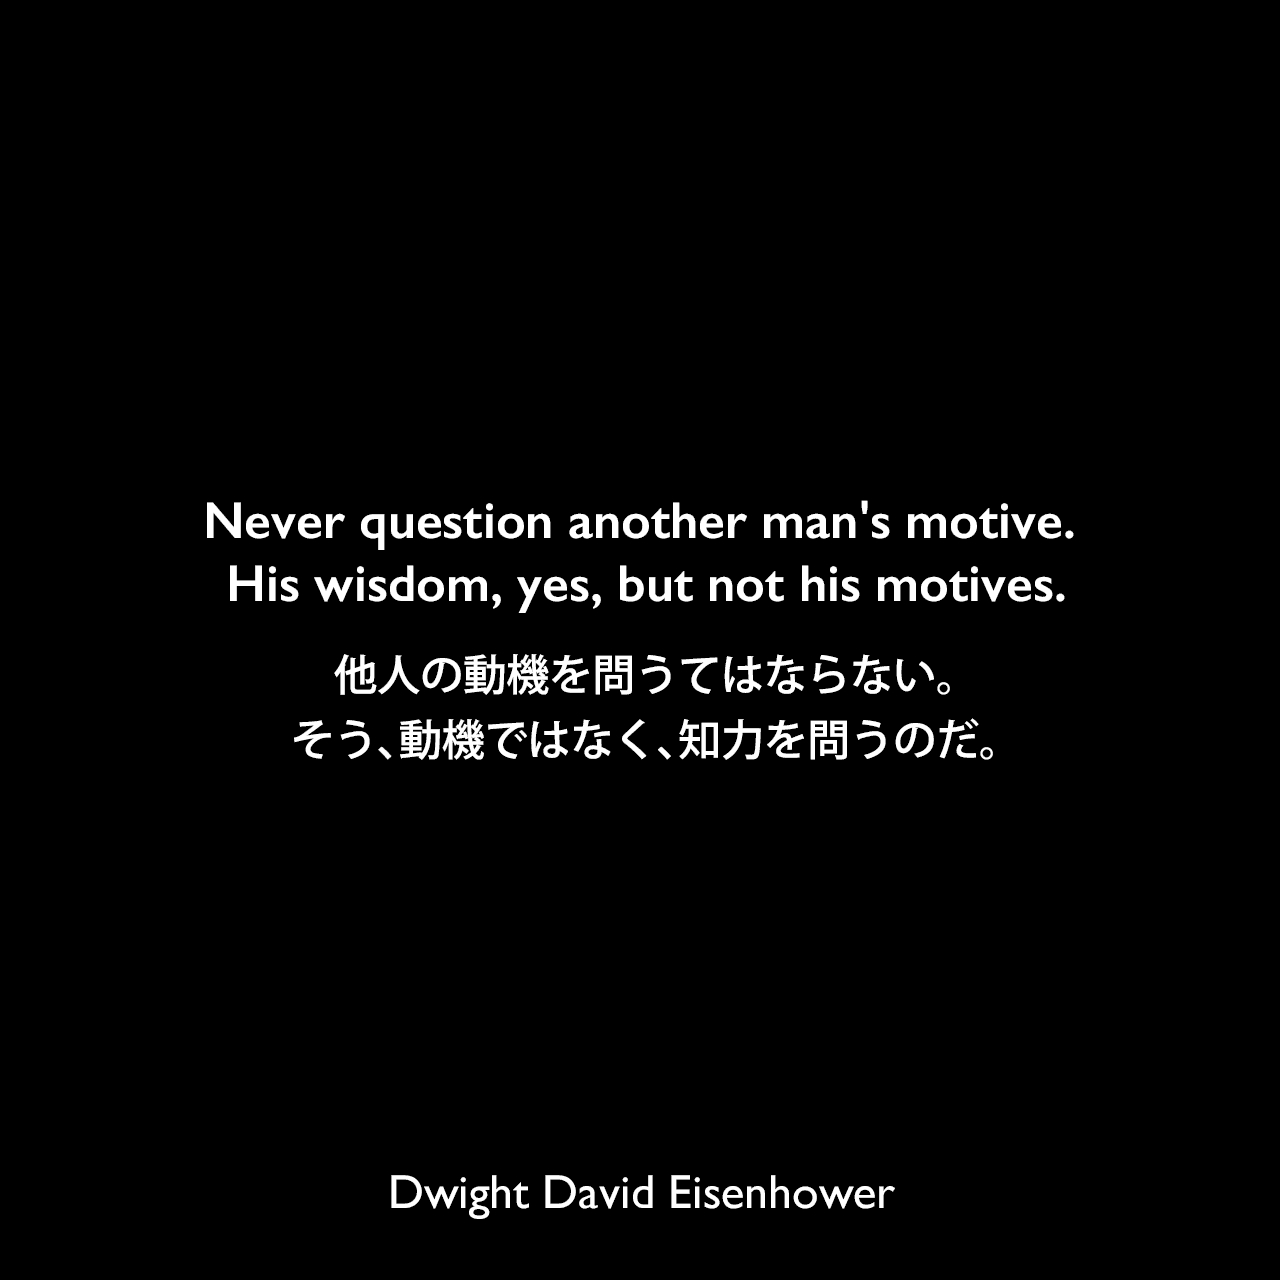 Never question another man's motive. His wisdom, yes, but not his motives.他人の動機を問うてはならない。そう、動機ではなく、知力を問うのだ。Dwight David Eisenhower